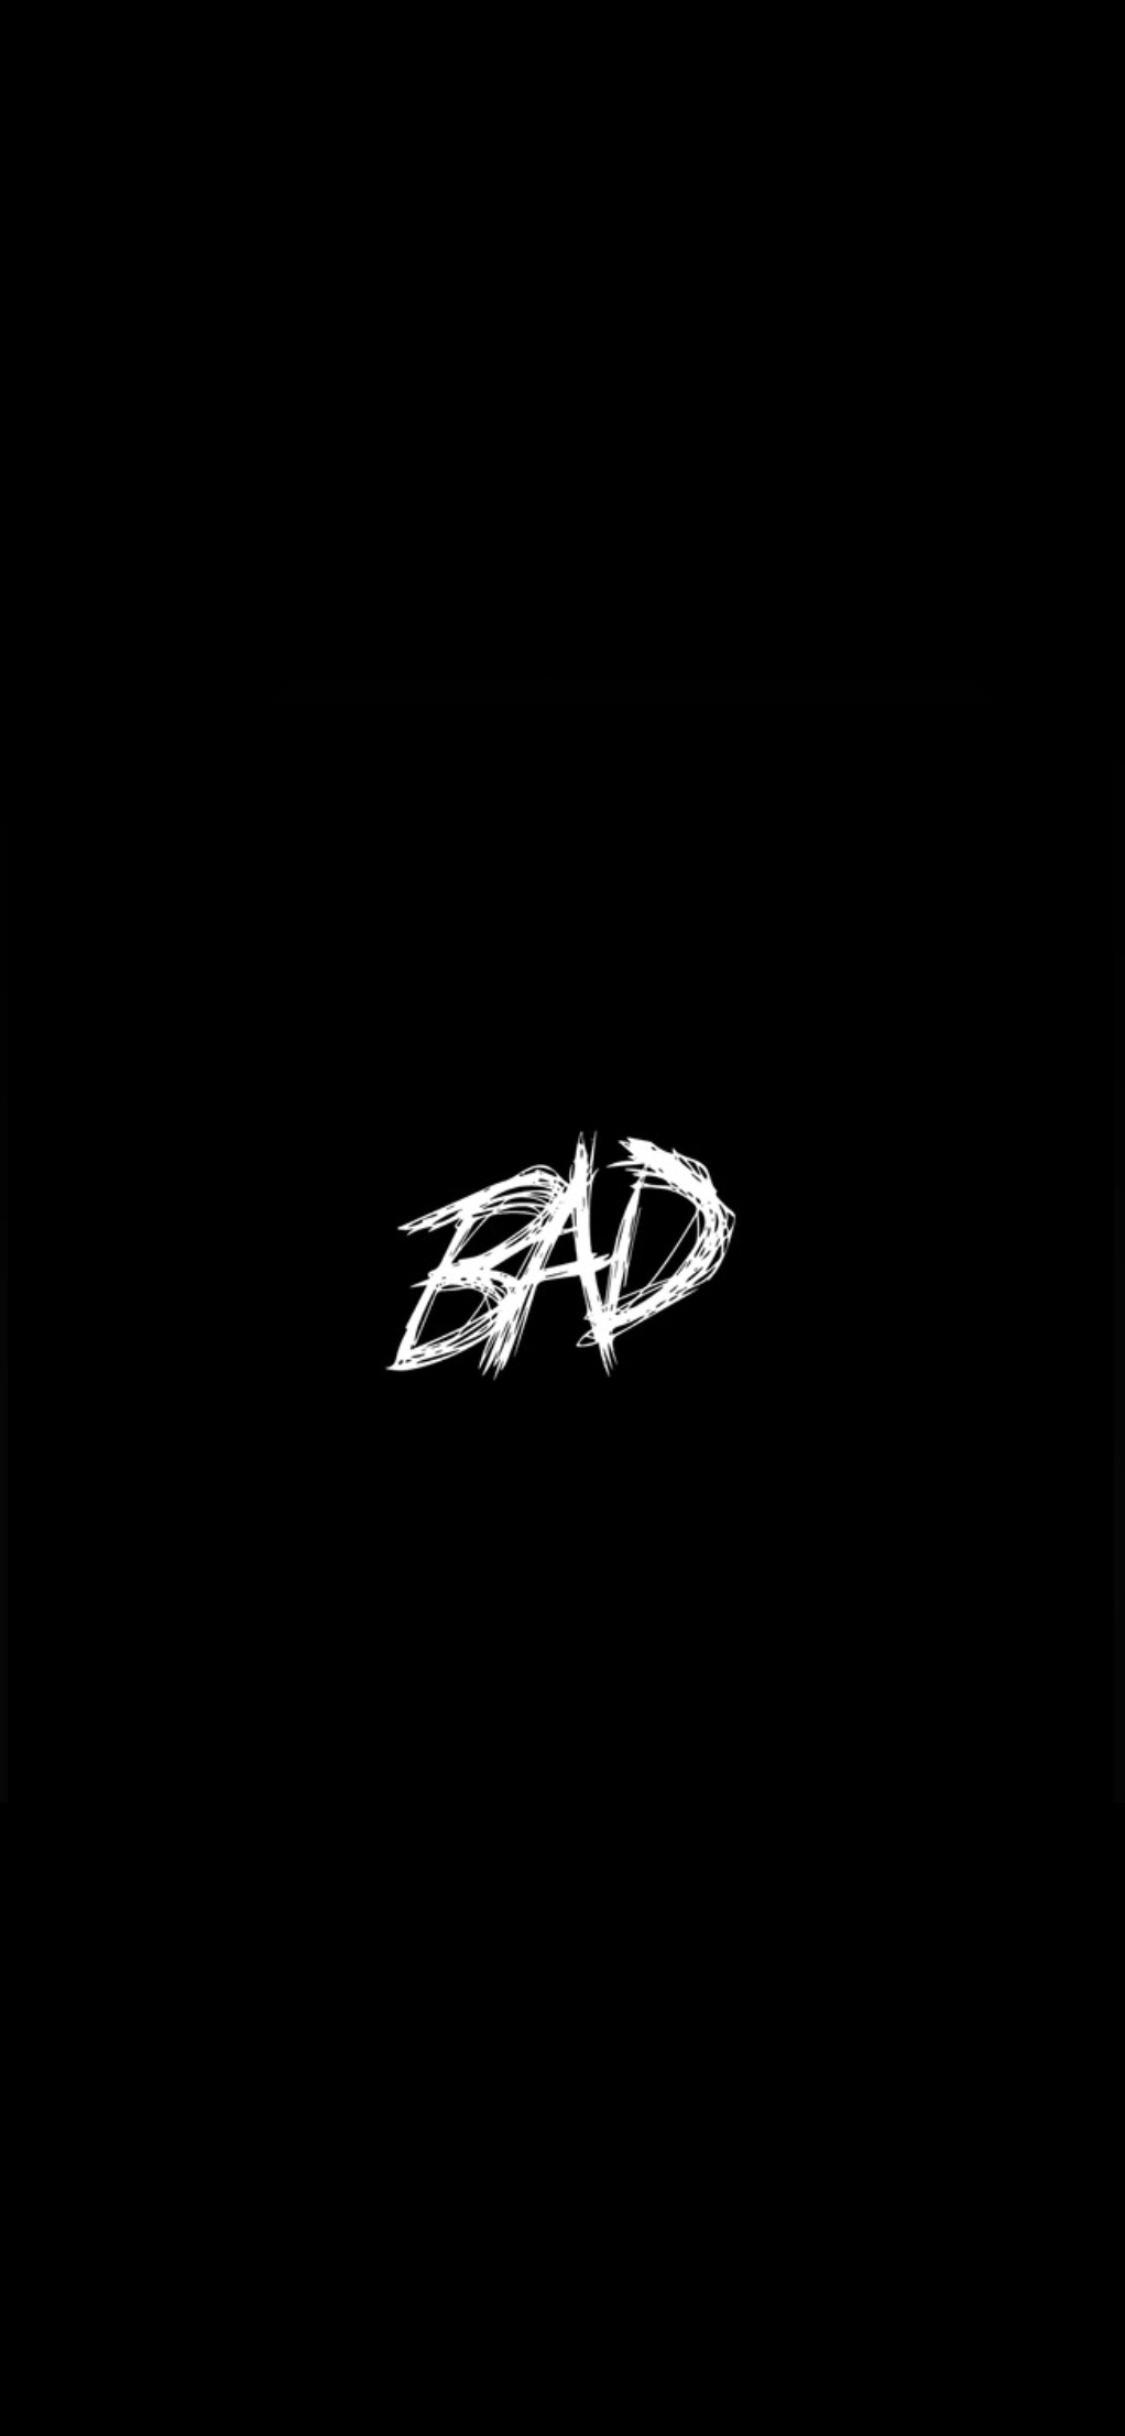 Basic BAD Wallpaper Yes Im aware this took less than a minute 1125x2436